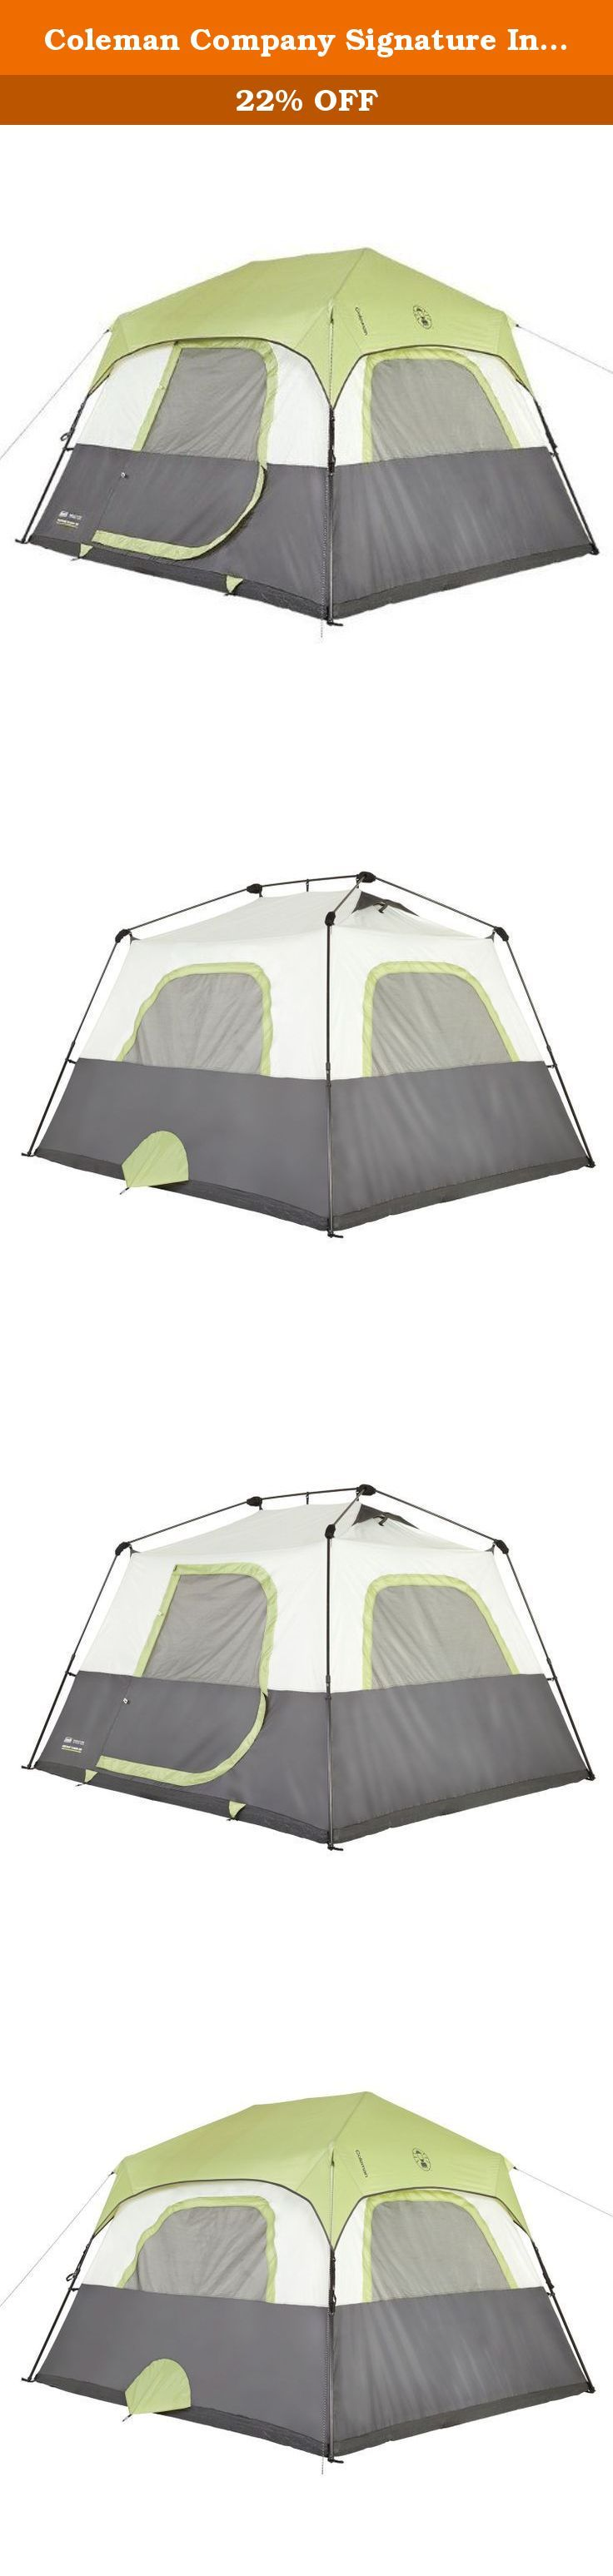 Coleman Company Signature Instant Cabin 6 Person Double Hub Tent, Black/Grey. Get to the fun faster with the Coleman 6-Person Instant Tent. Set up the tent in a minute and take it down in the same time. It's big enough to hold two queen airbeds and tall enough for campers to stand up and move, making this tent feel a lot like home. When the weather gets rough, count on the WeatherTech System and fully-taped seams to keep you dry. At two times the thickness of standard material, the fabric…